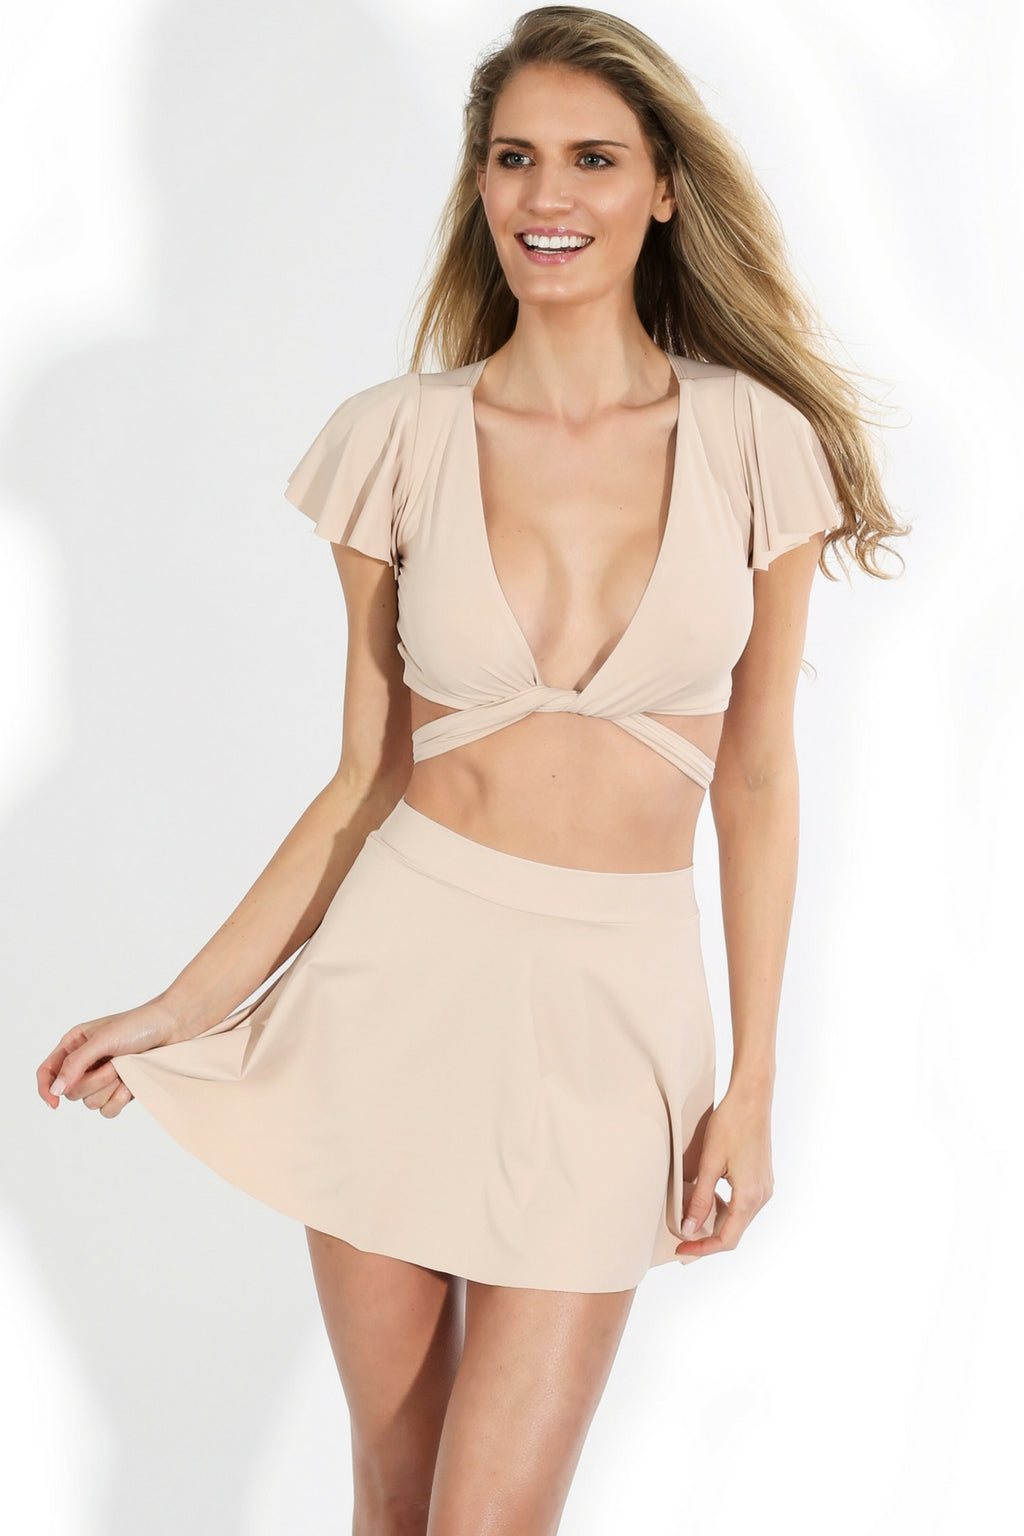 Nude Beachwear Crop Top Brazilian